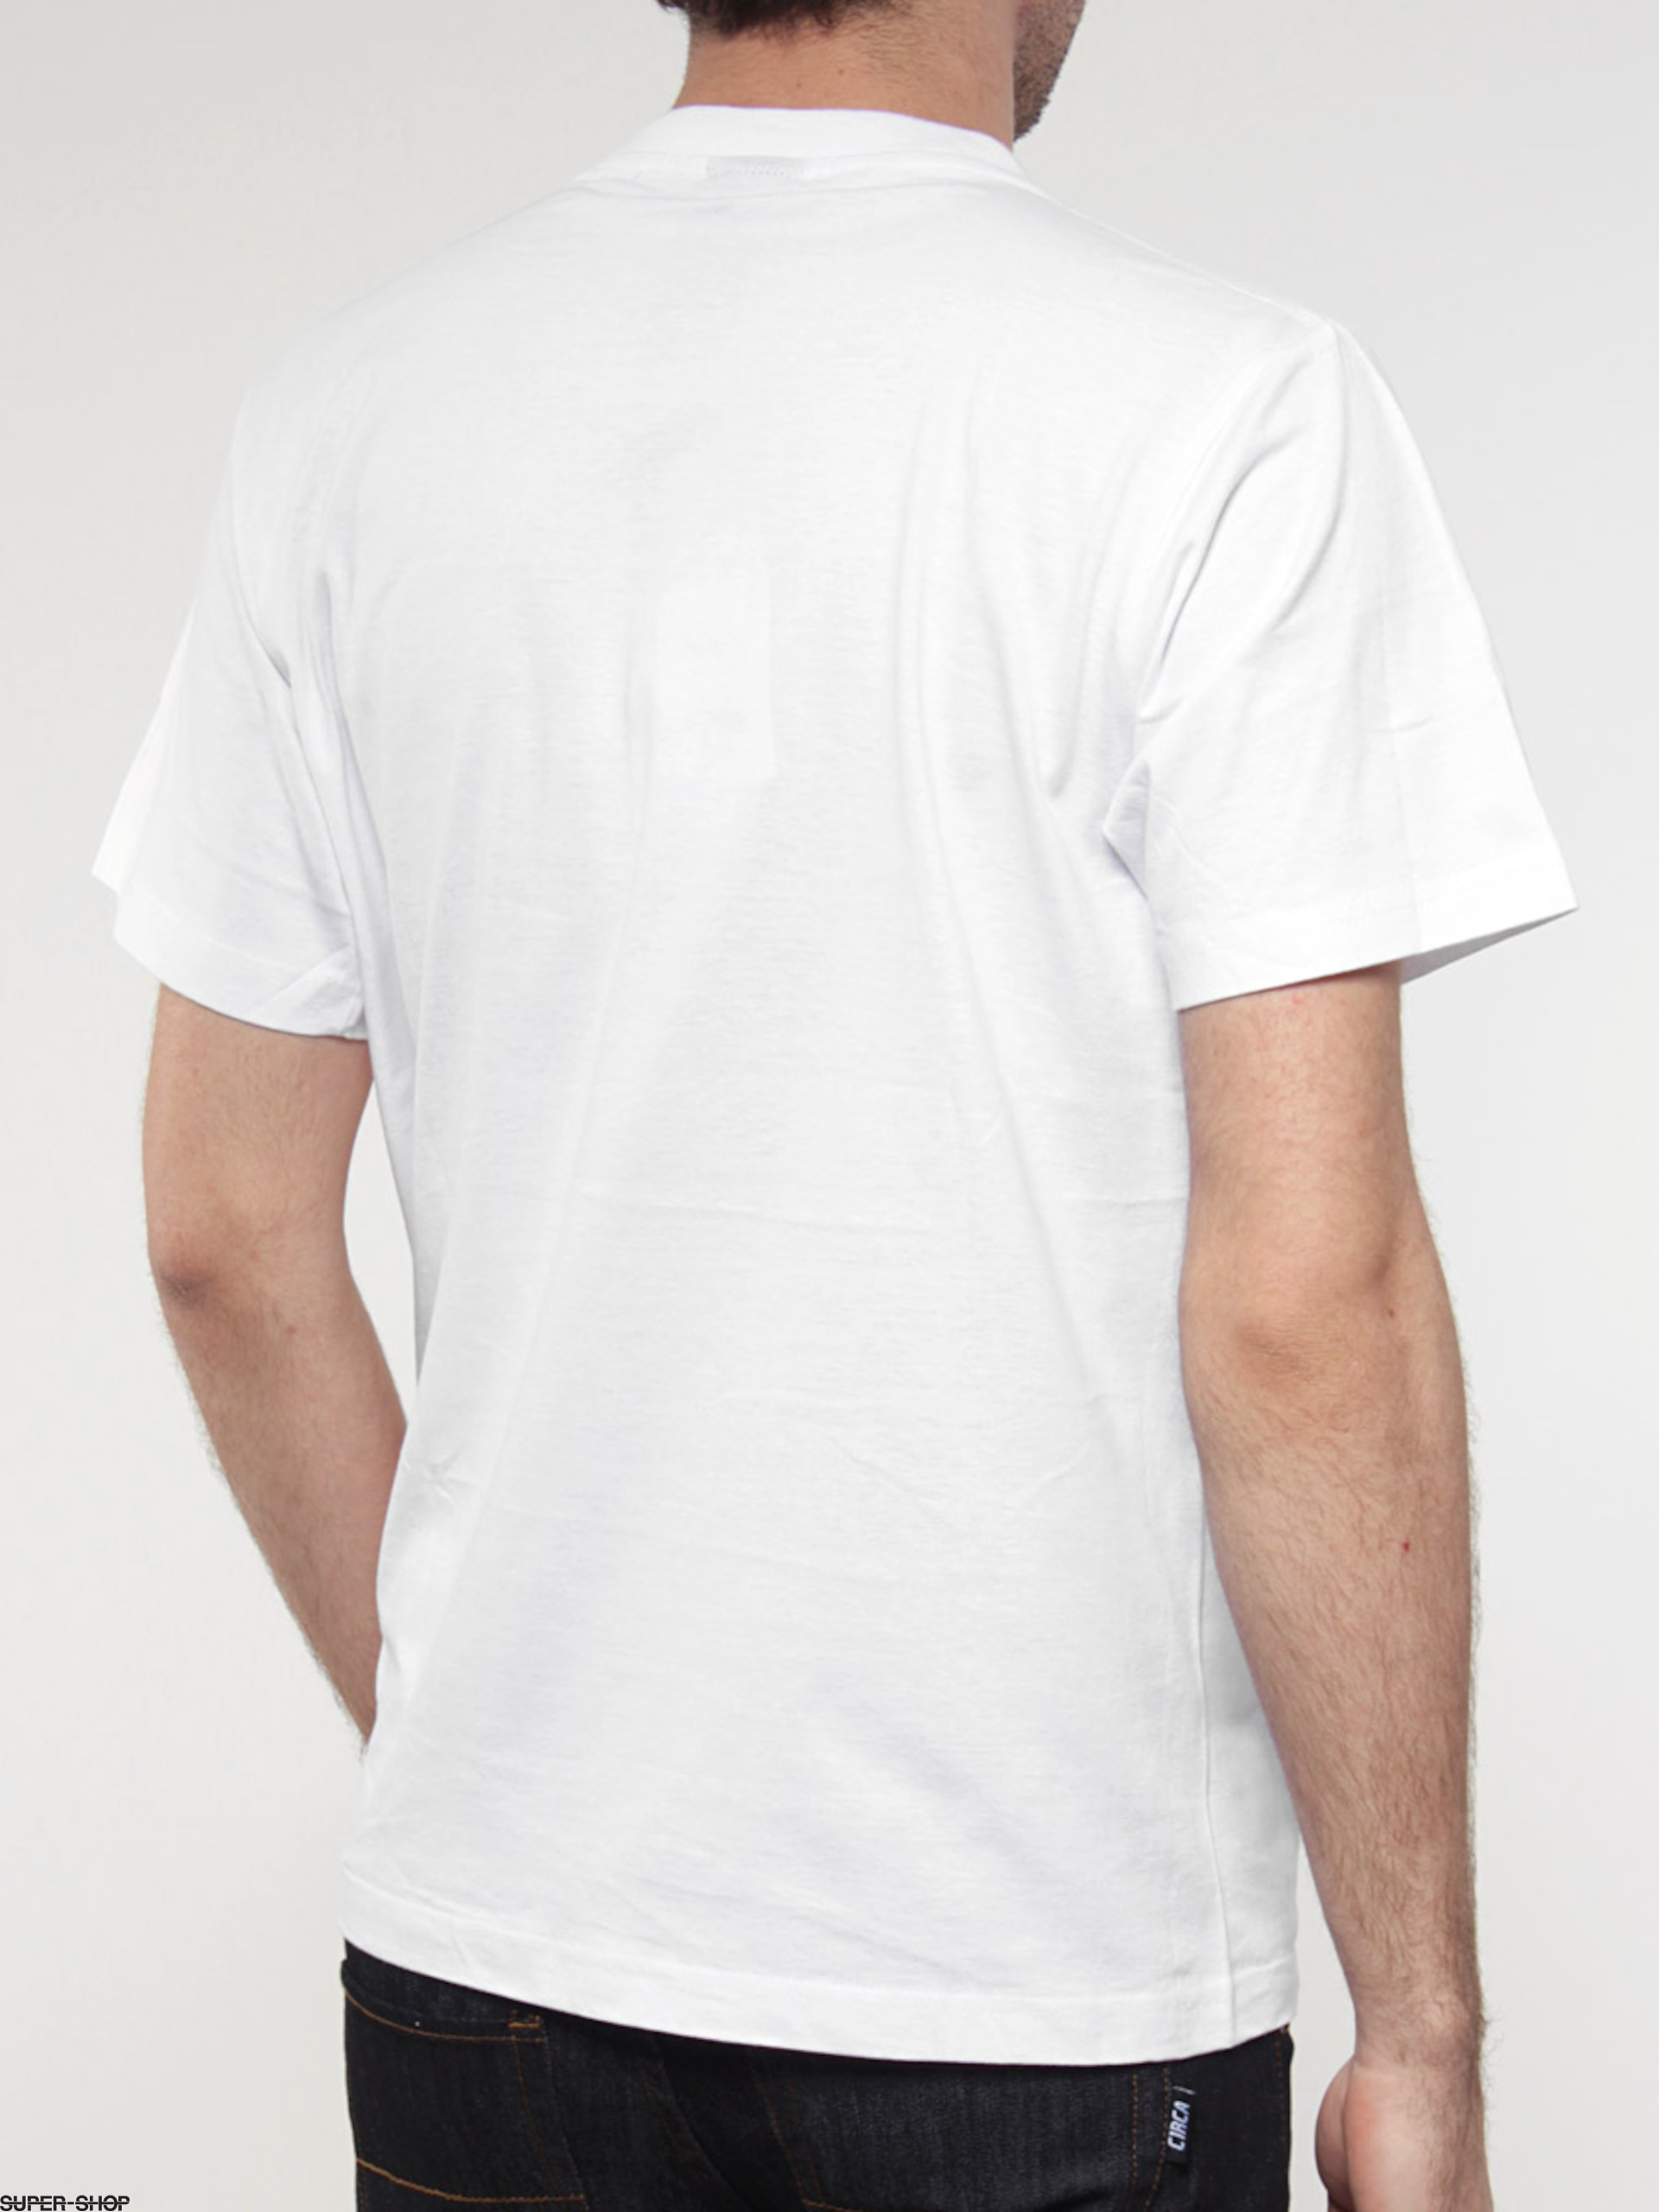 Smith39s t shirt model 22 white for T shirt template with model